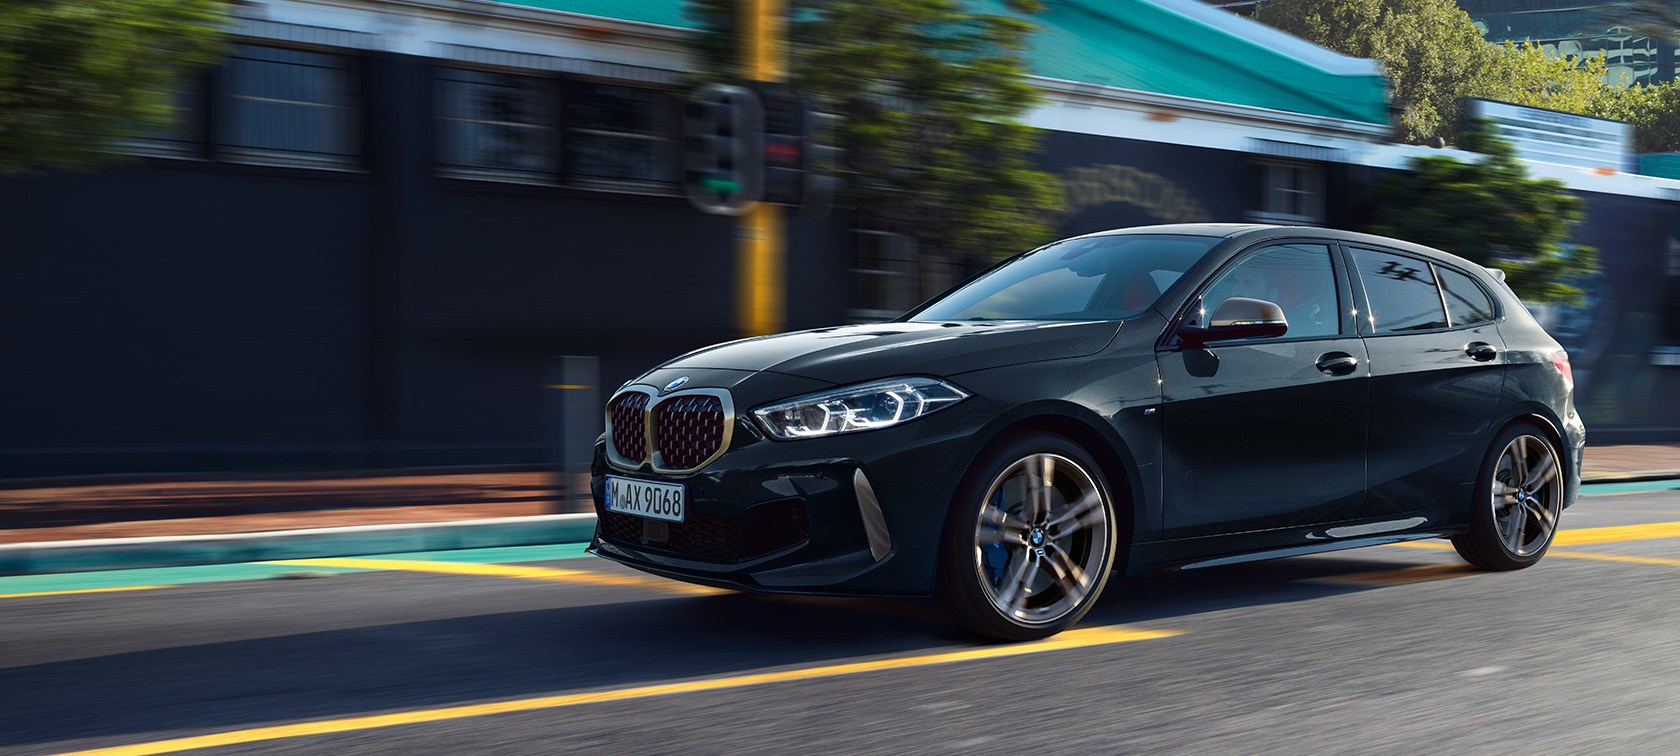 The all-new BMW M135i xDrive in Black Sapphire metallic, three-quarter side view driving.